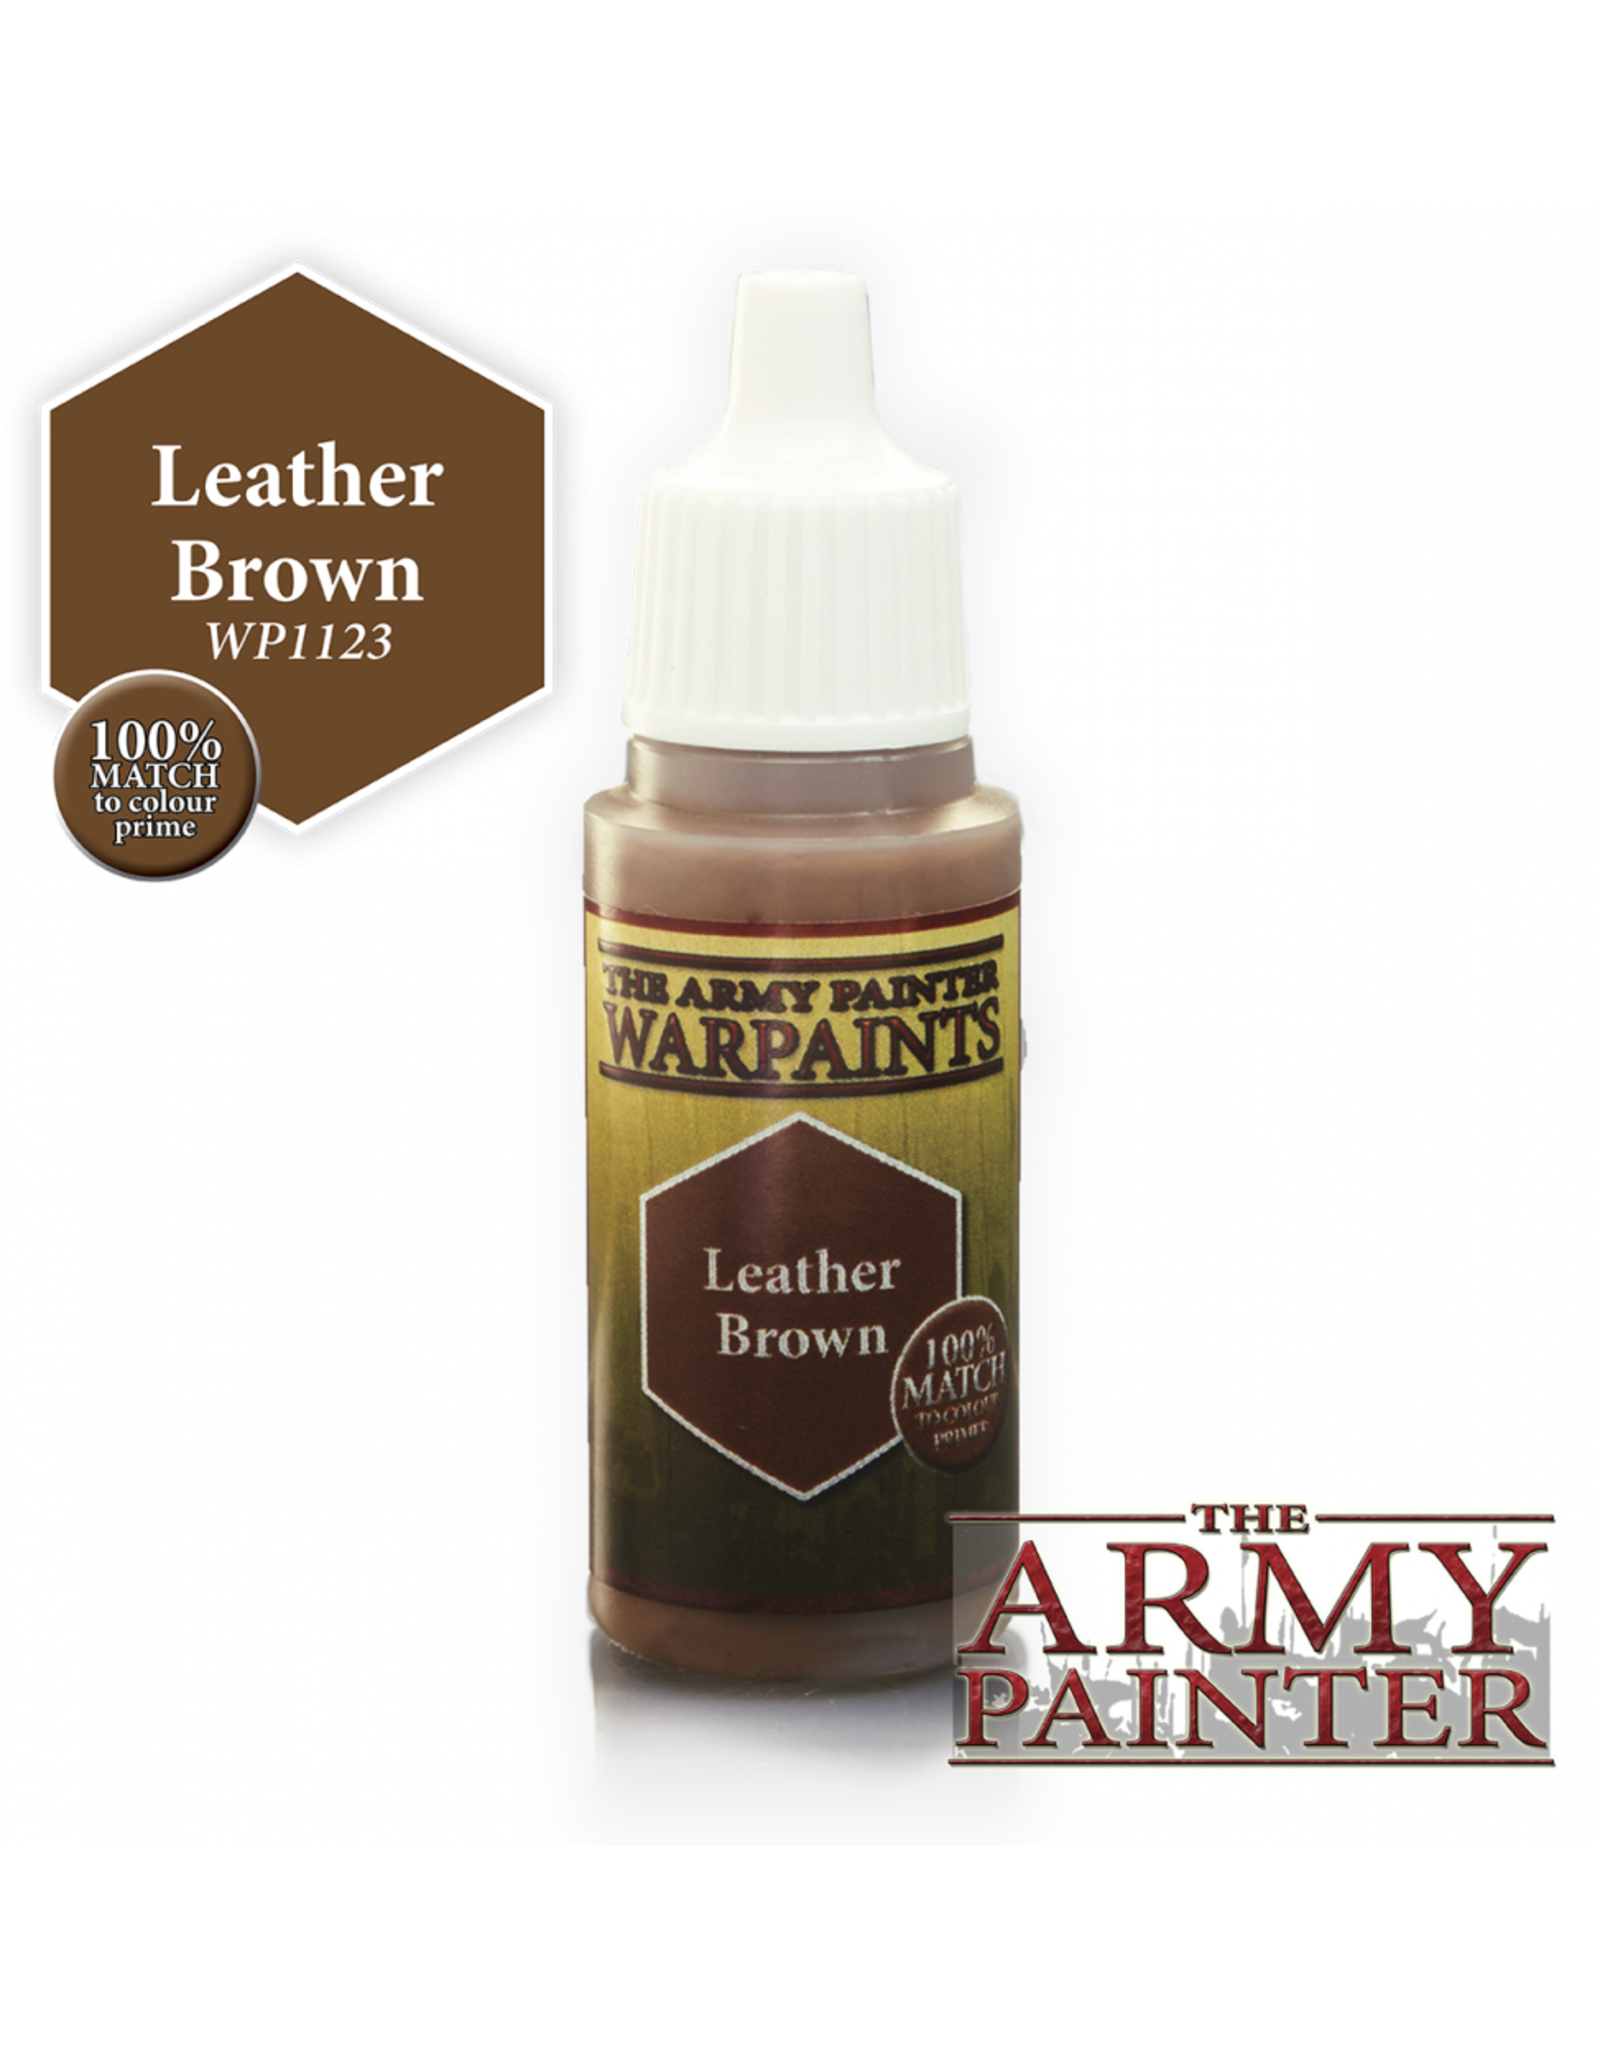 THE ARMY PAINTER ARMY PAINTER WARPAINTS LEATHER BROWN